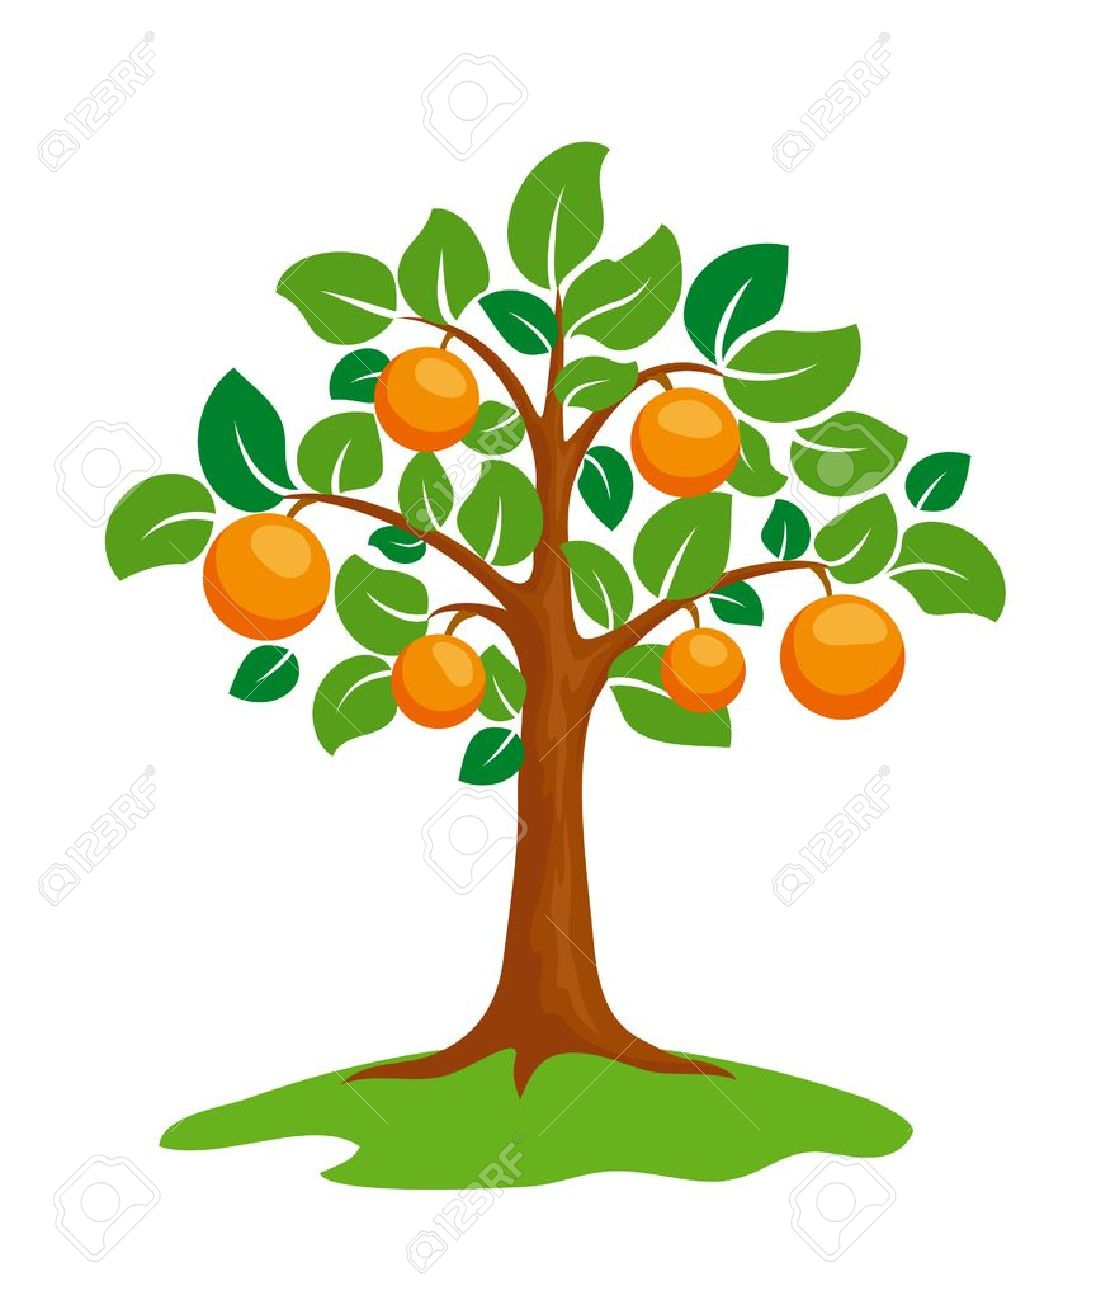 Orange tree clipart 1 » Clipart Station.